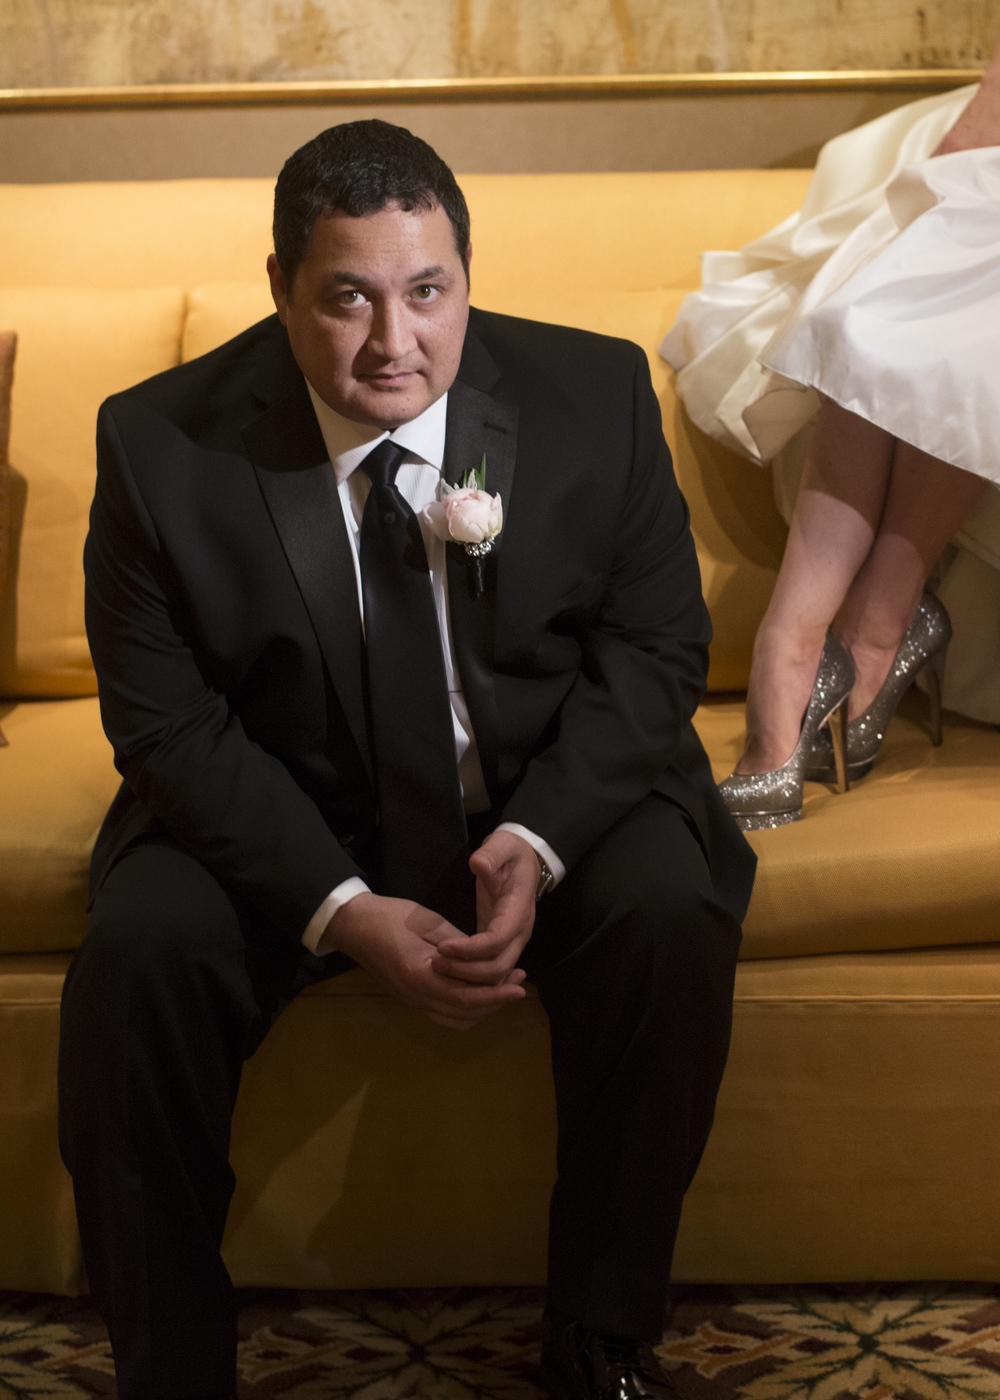 The groom and some sexy shoes - An Intimate Wedding at Four Seasons Las Vegas.